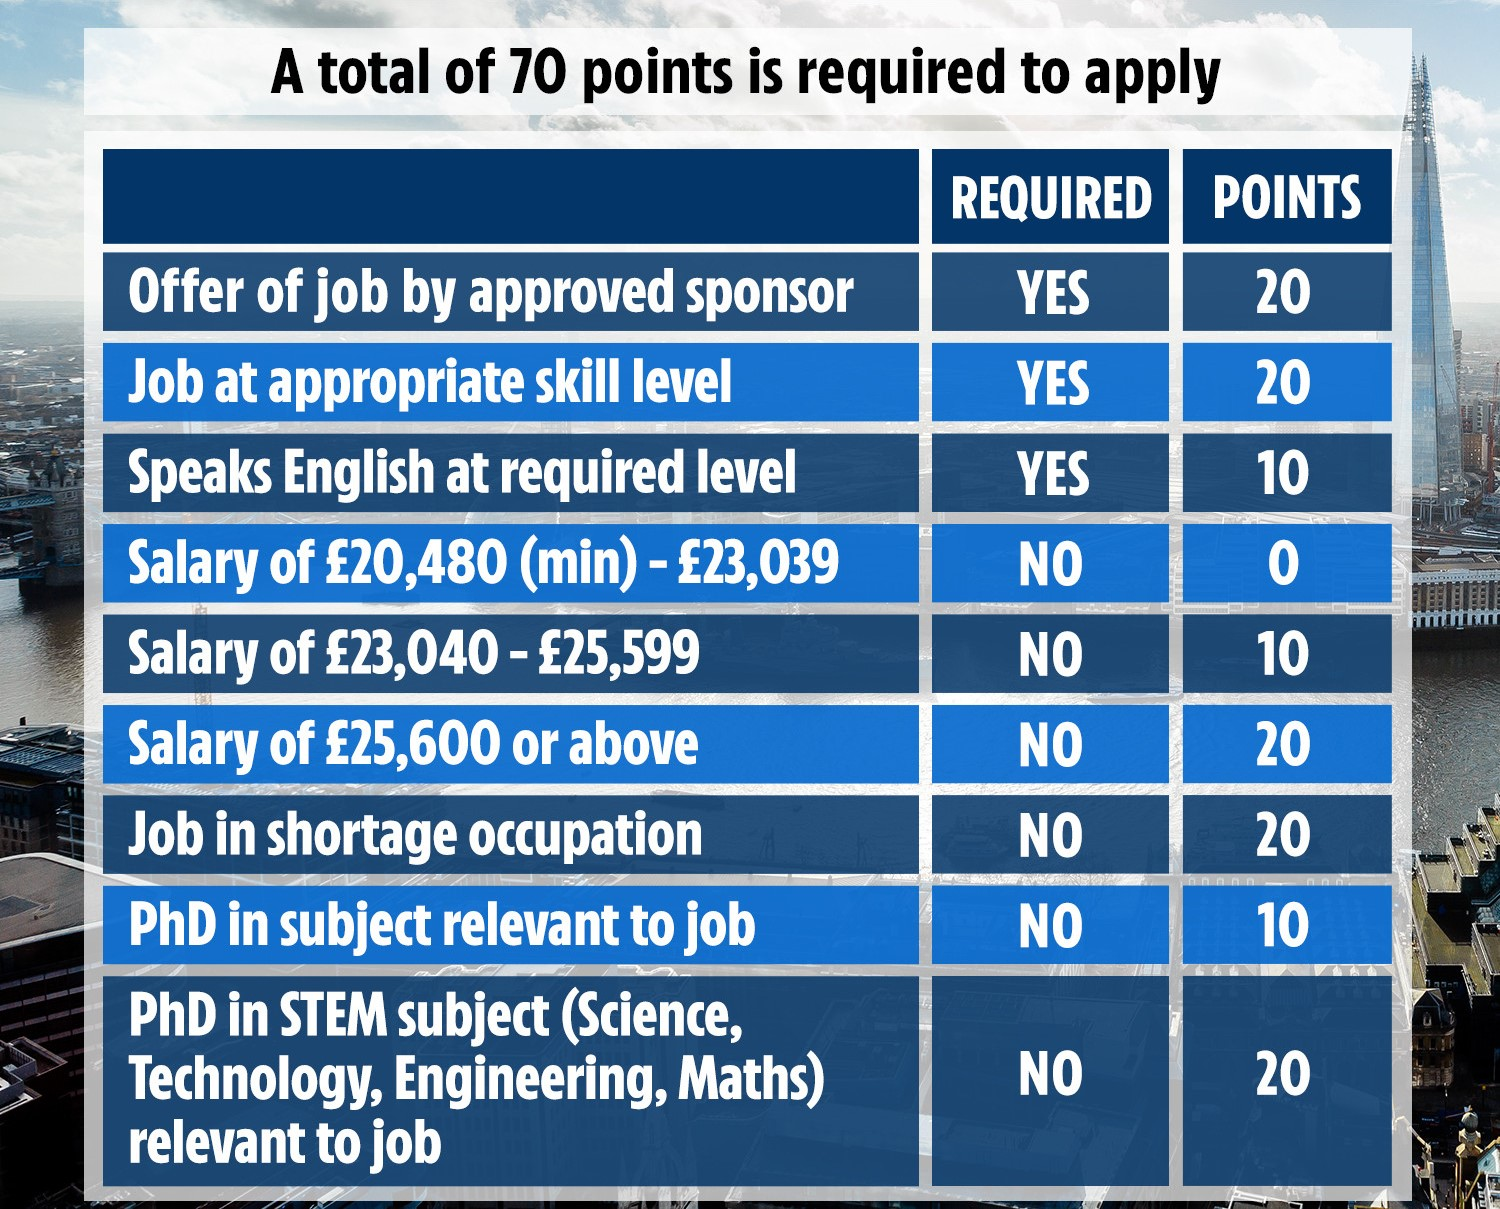 The new Points-Based Immigration System will award points for specific skills, professions, salaries or qualifications/attributes, and visas will be awarded to those who gain sufficient points.